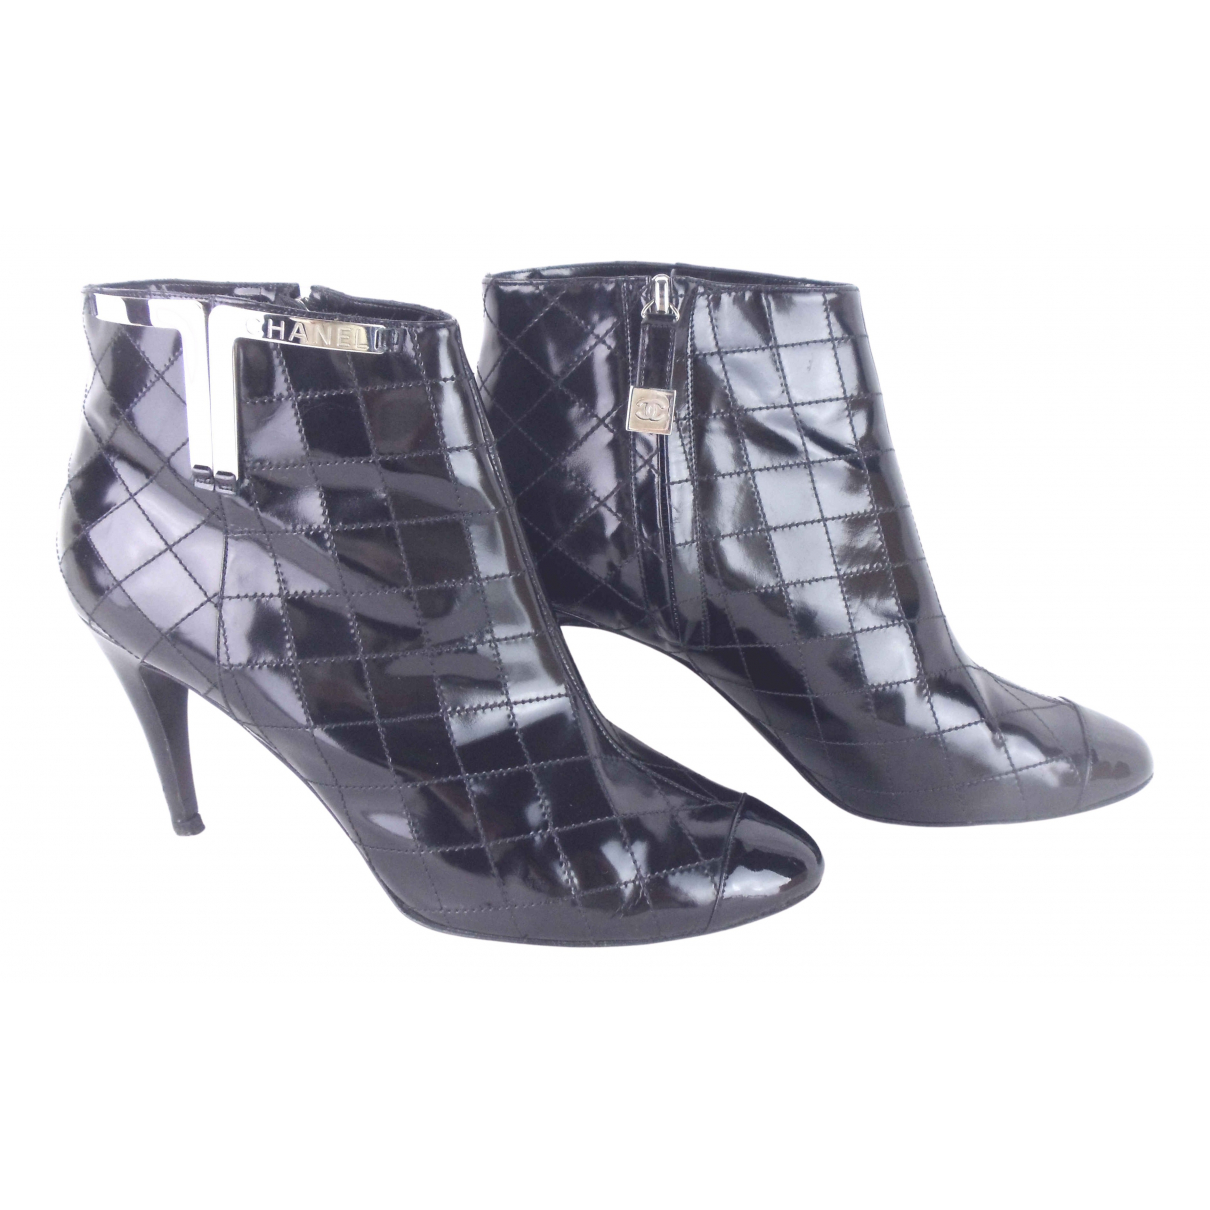 Chanel N Black Patent leather Ankle boots for Women 38 EU